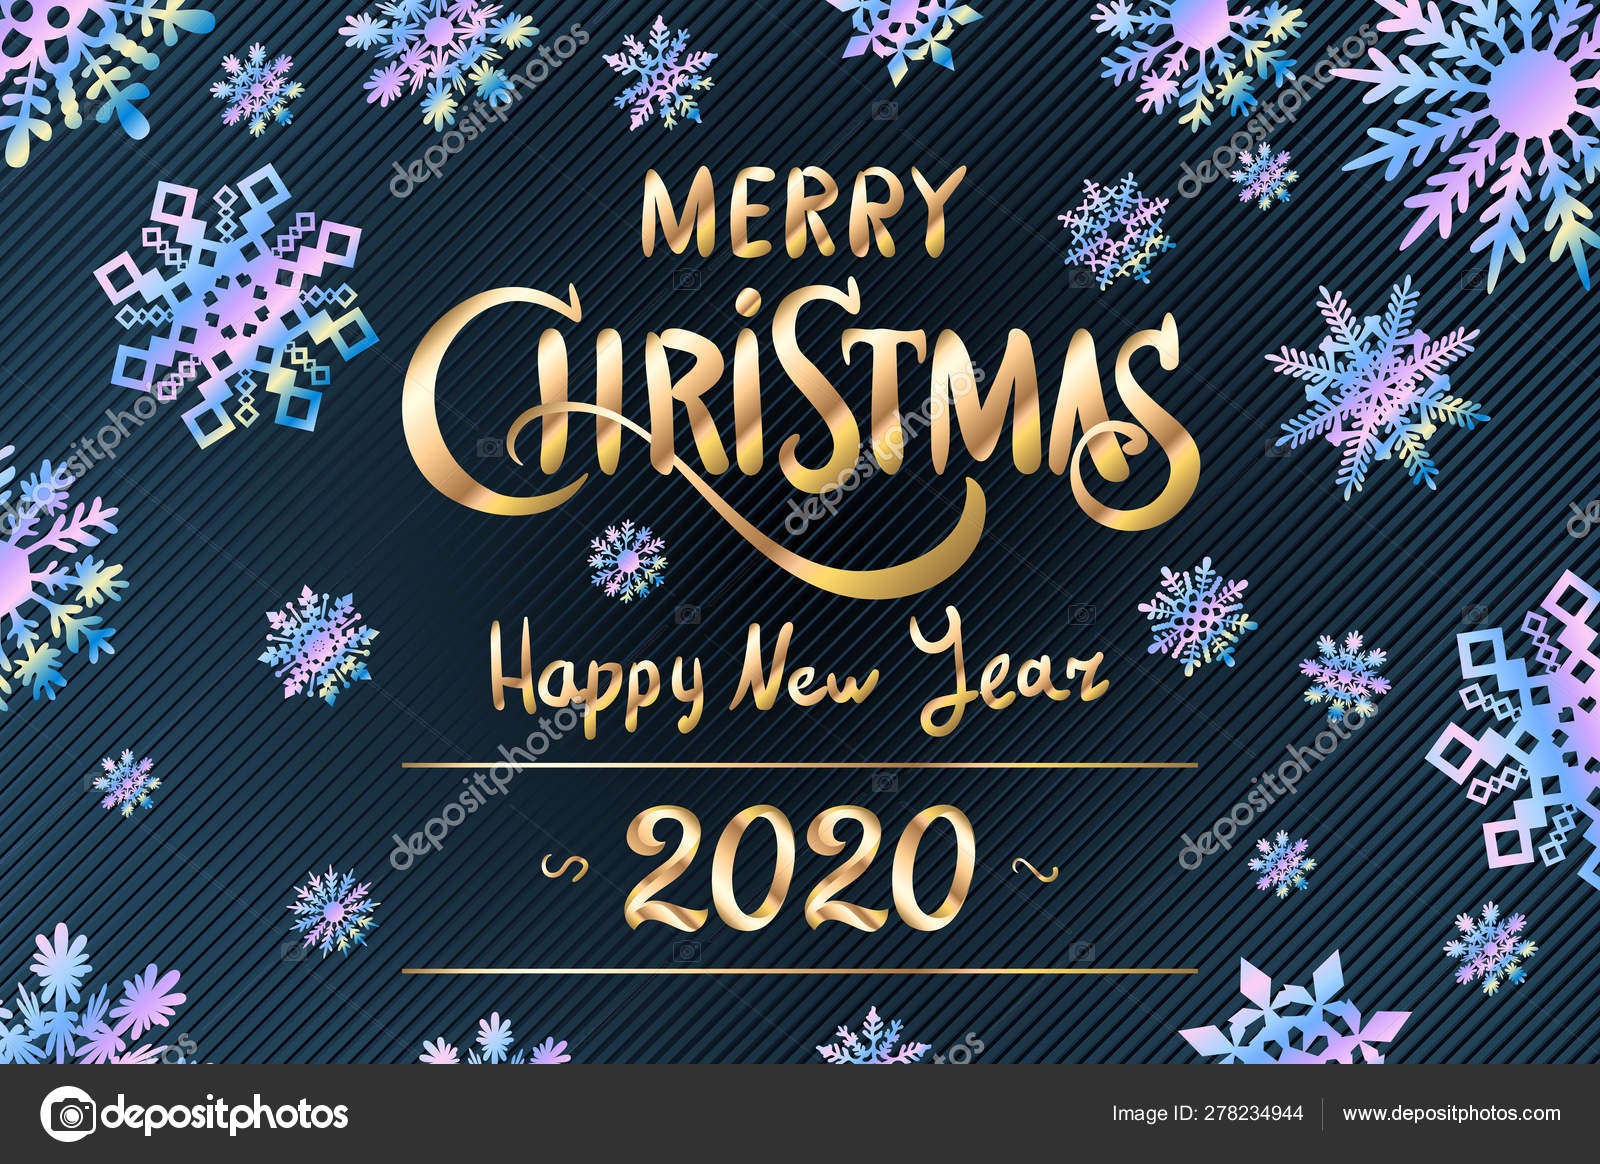 Merry Christmas And Happy New Year 2020 Lettering Template Greeting Card Invitation With Blue Snowflakes Winter Holidays Related Typographic Quote Vector Vintage Illustration Stock Vector C Romanchik Ruslan Gmail Com 278234944